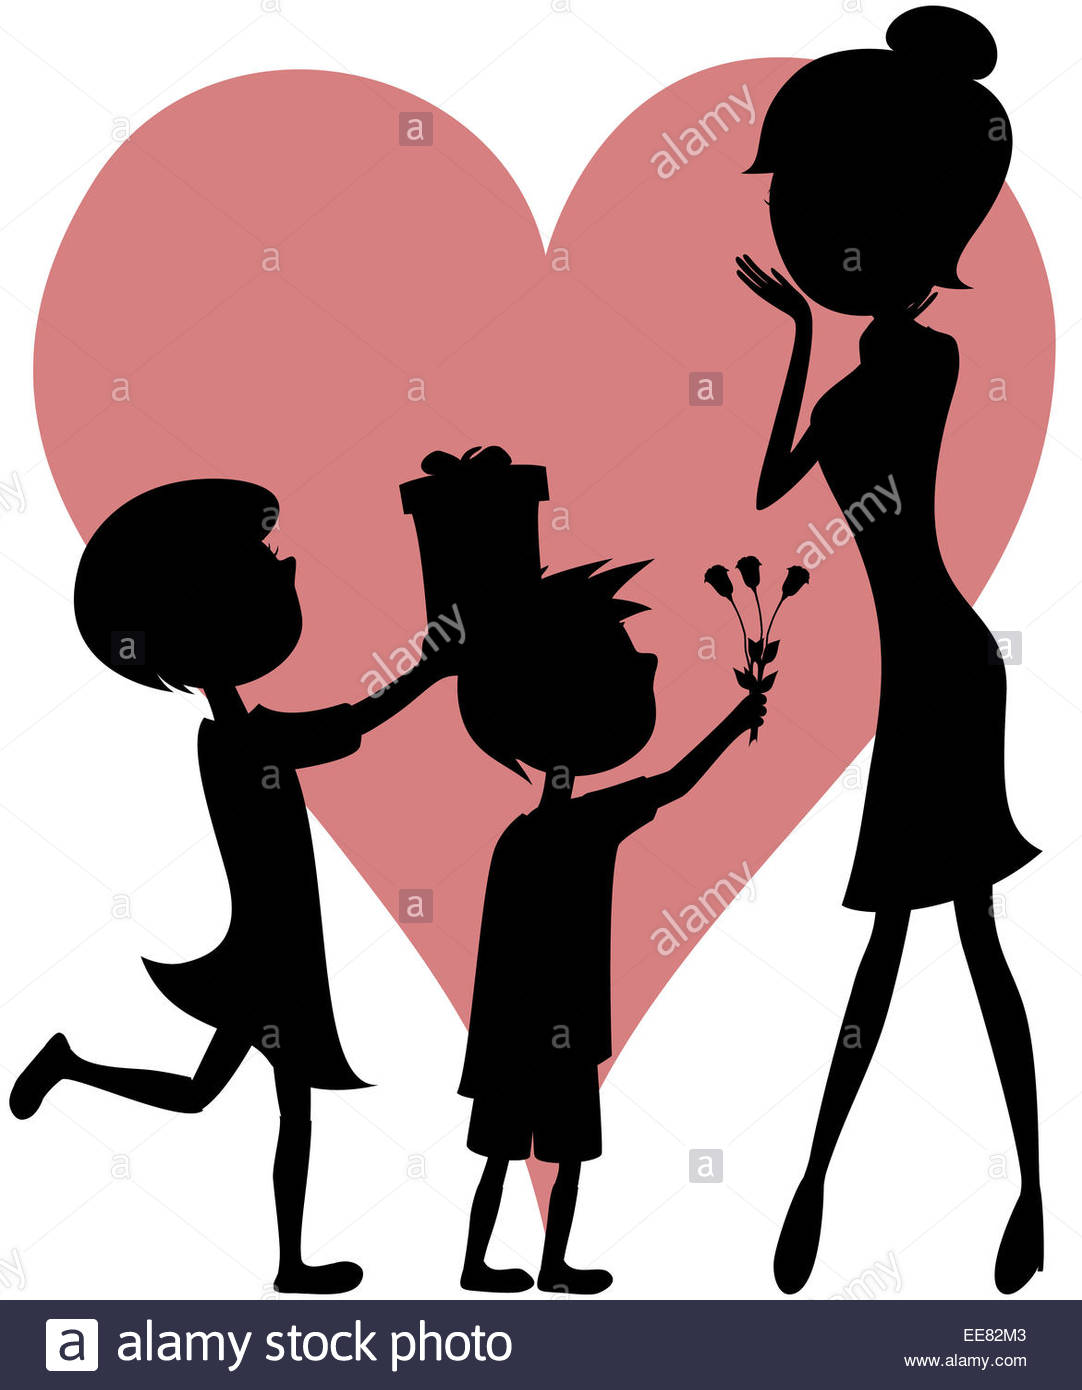 1082x1390 Cartoon style art of a girl and a boy with short hair giving a